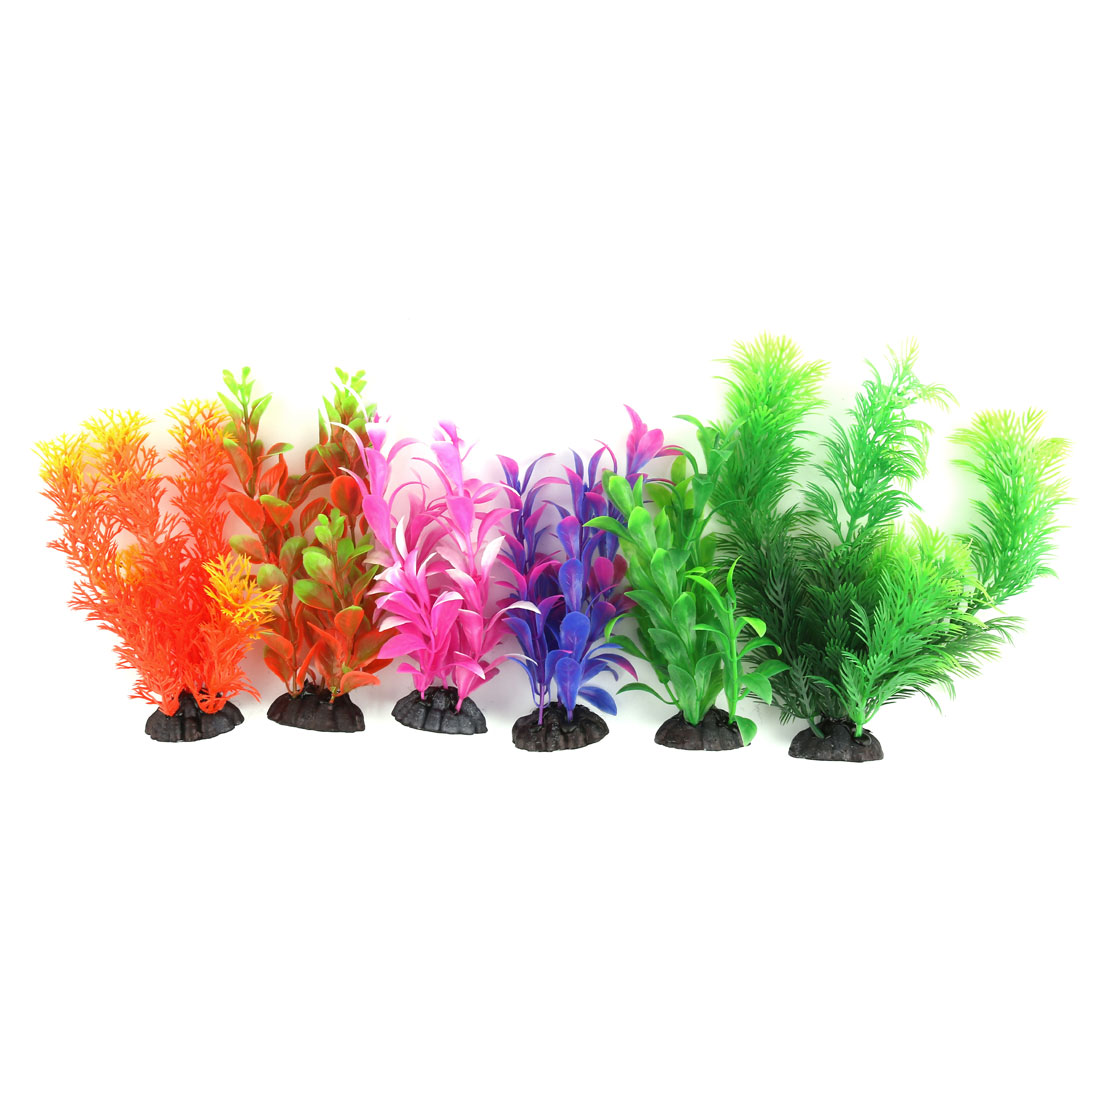 Aquarium Fish Tank Artificial Landscape Plant Grass Decoration Colorful 6 in 1